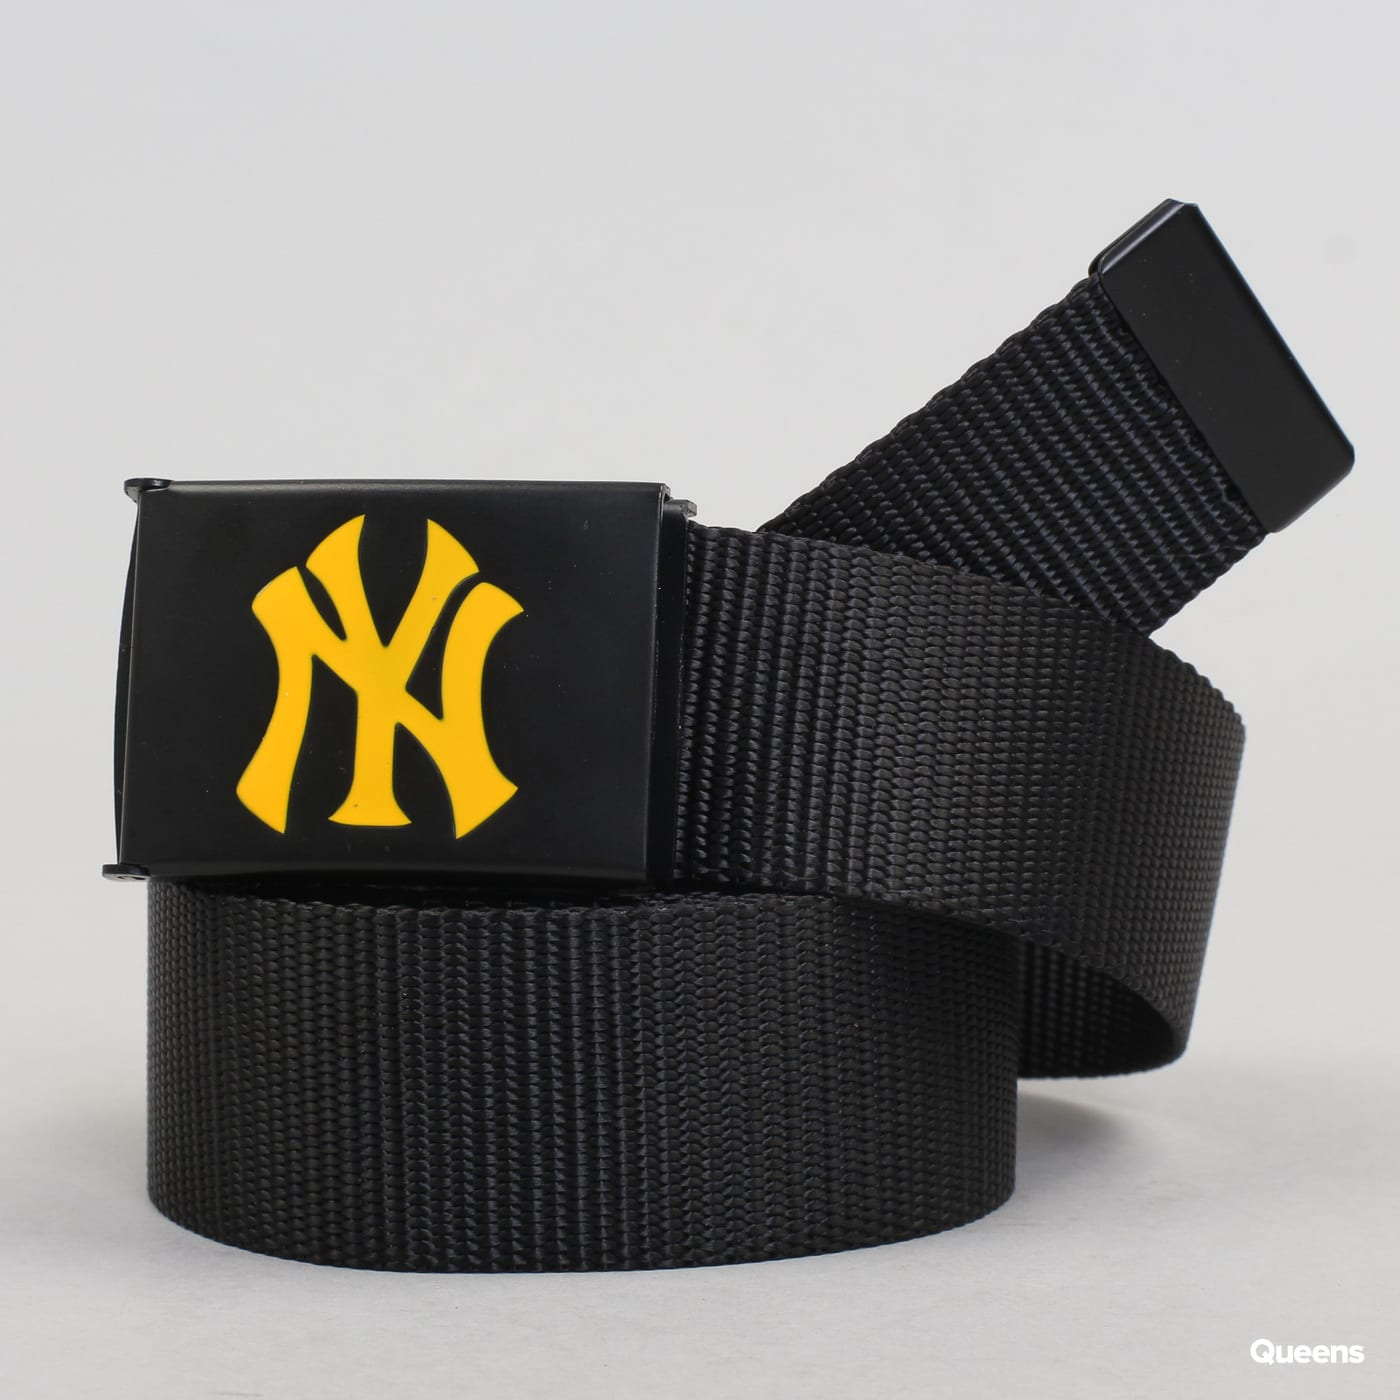 MD MLB Premium Black Woven Belt Single NY schwarz / gelb